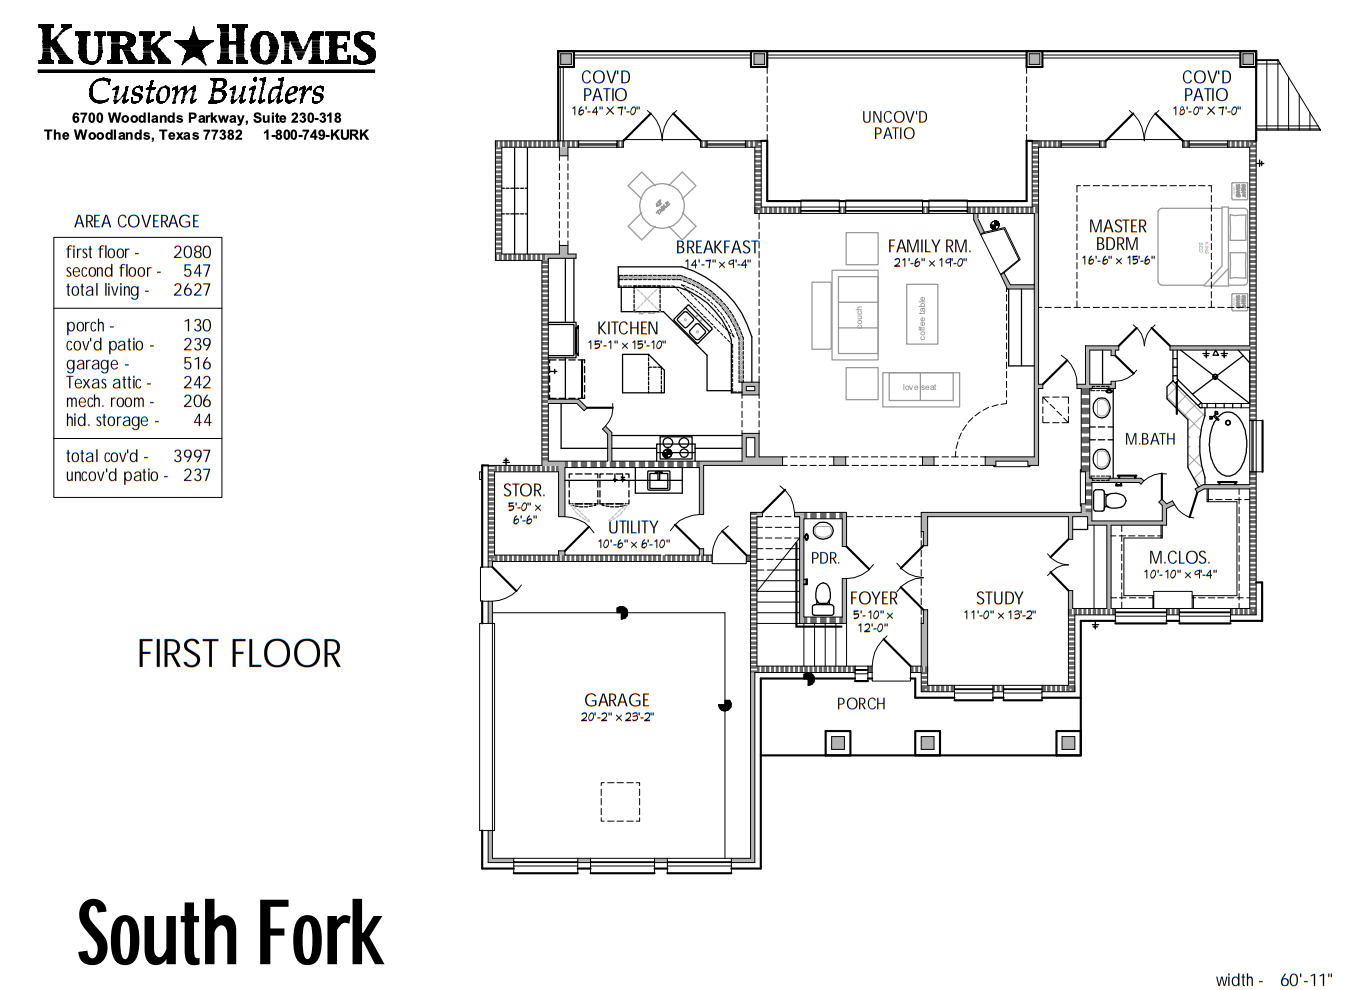 South Fork Floorplan